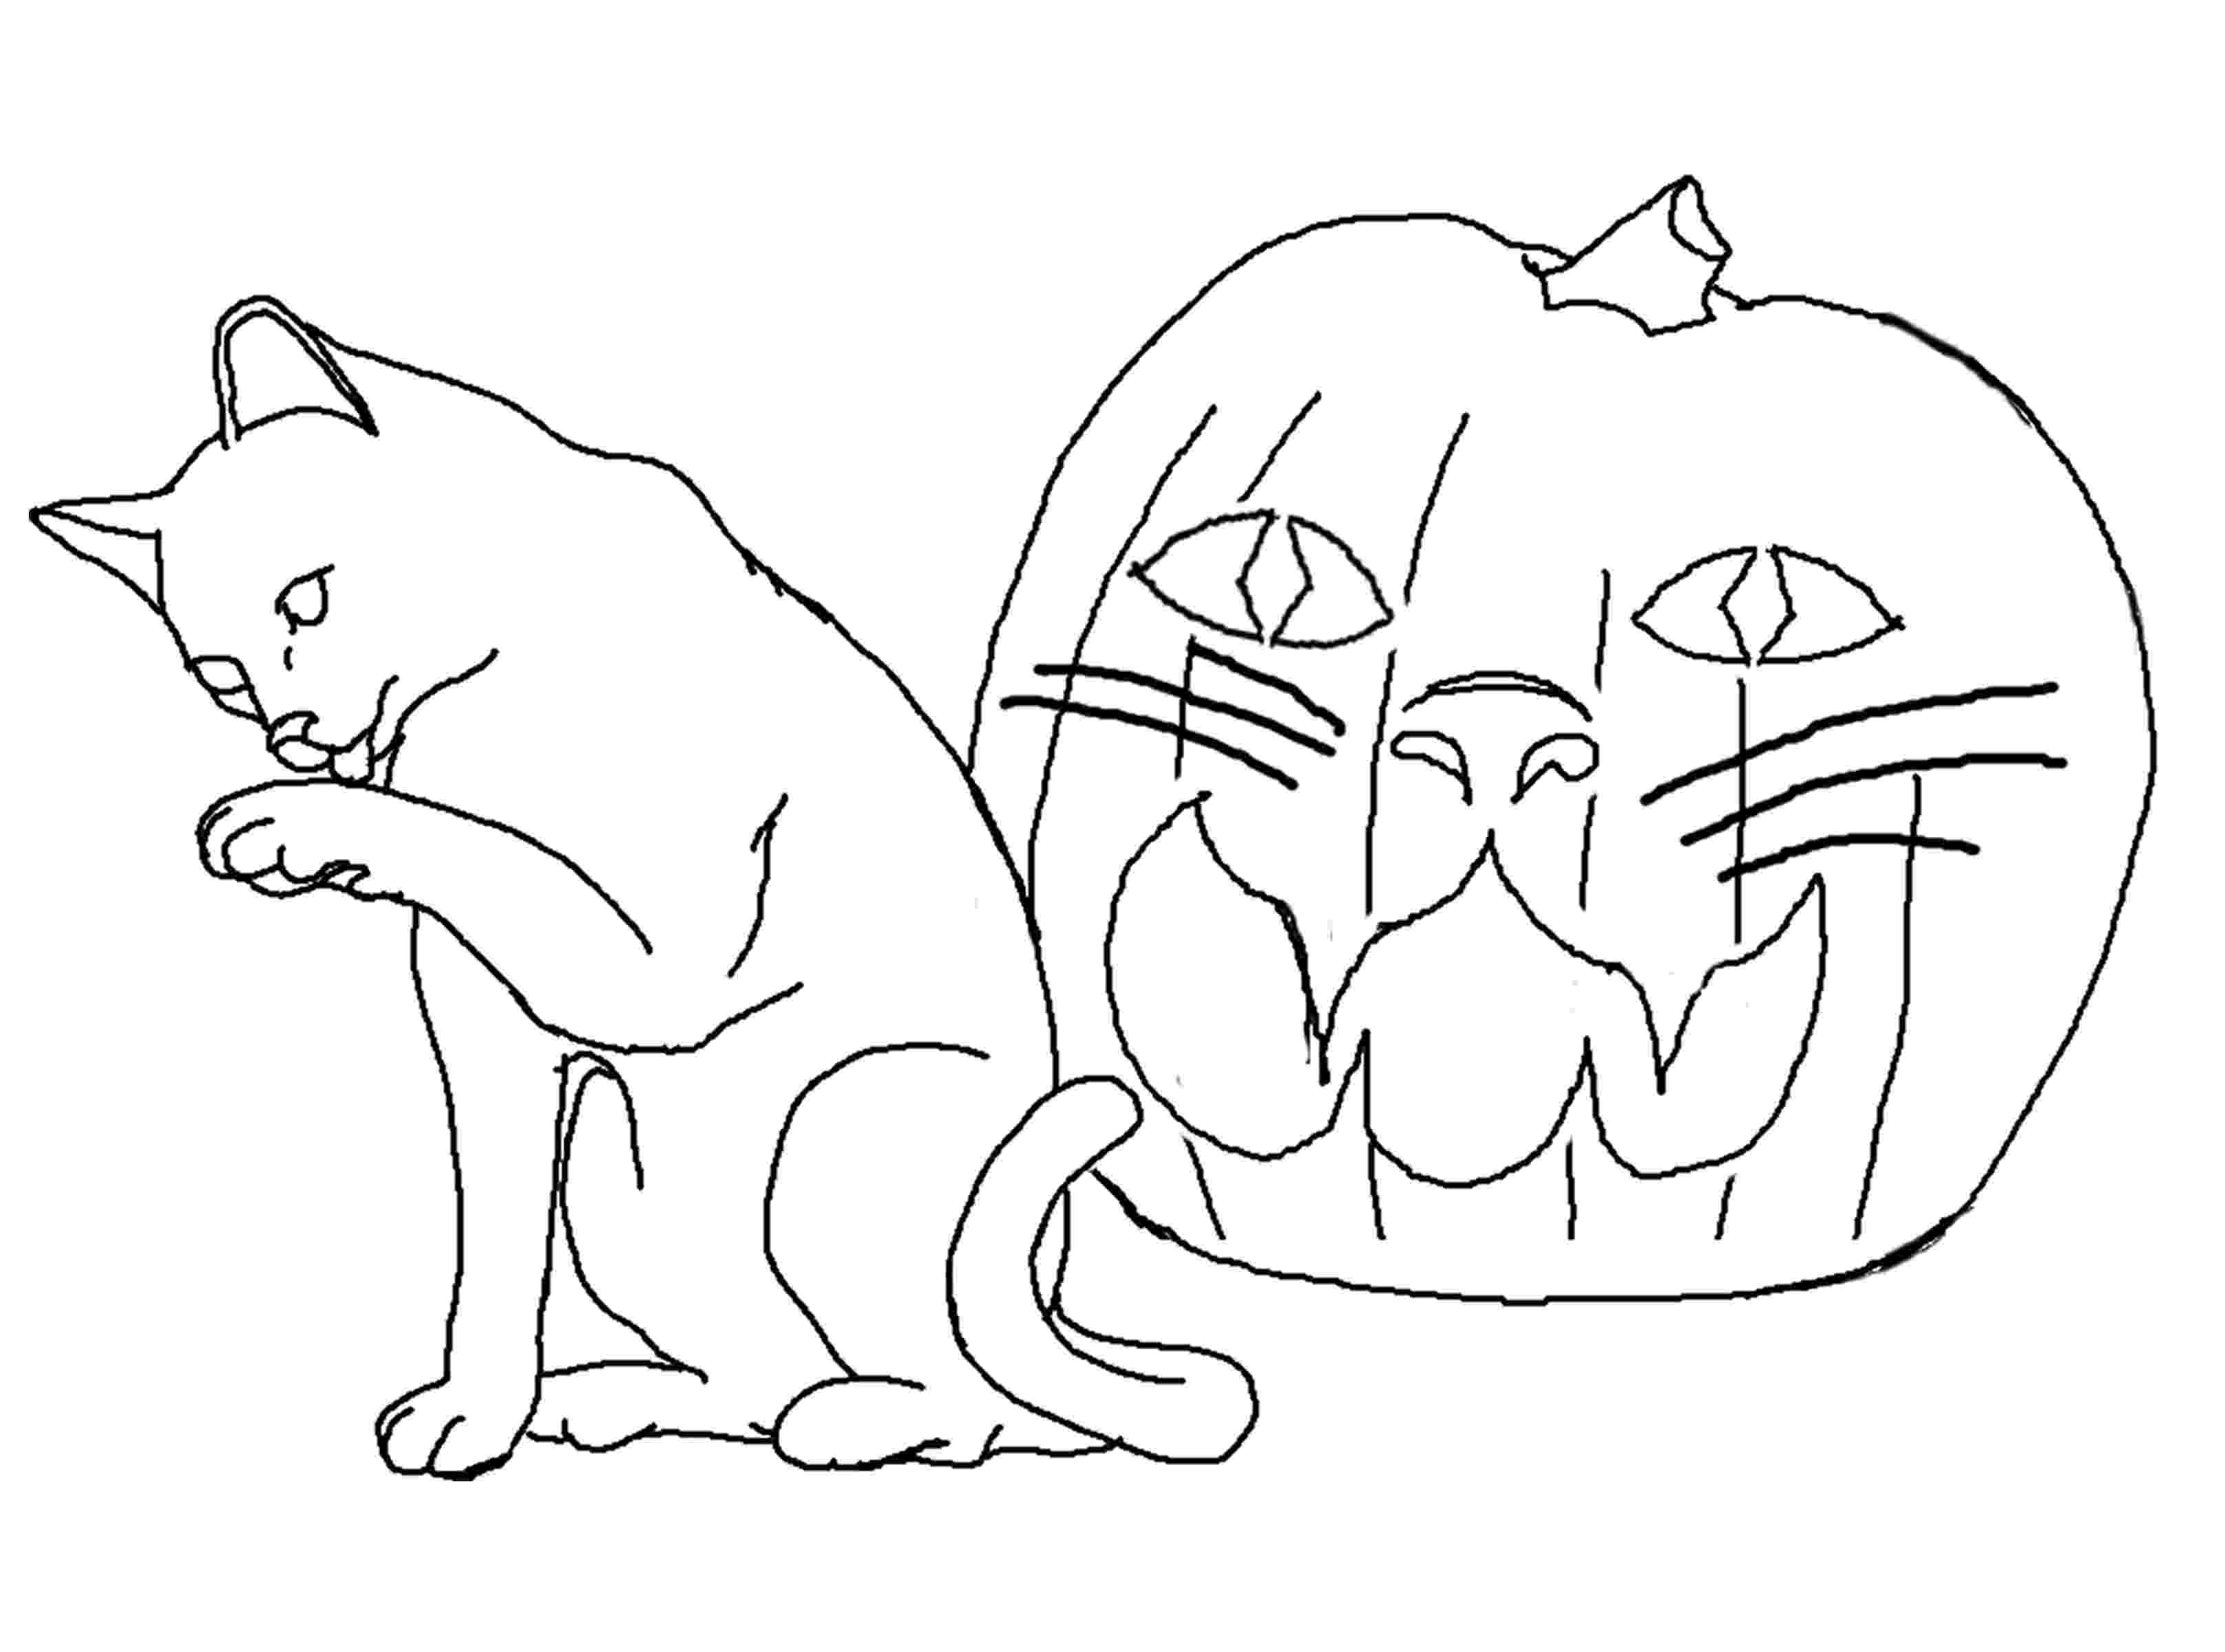 coloring cat pages coloring pages for kids cat coloring pages for kids cat coloring pages